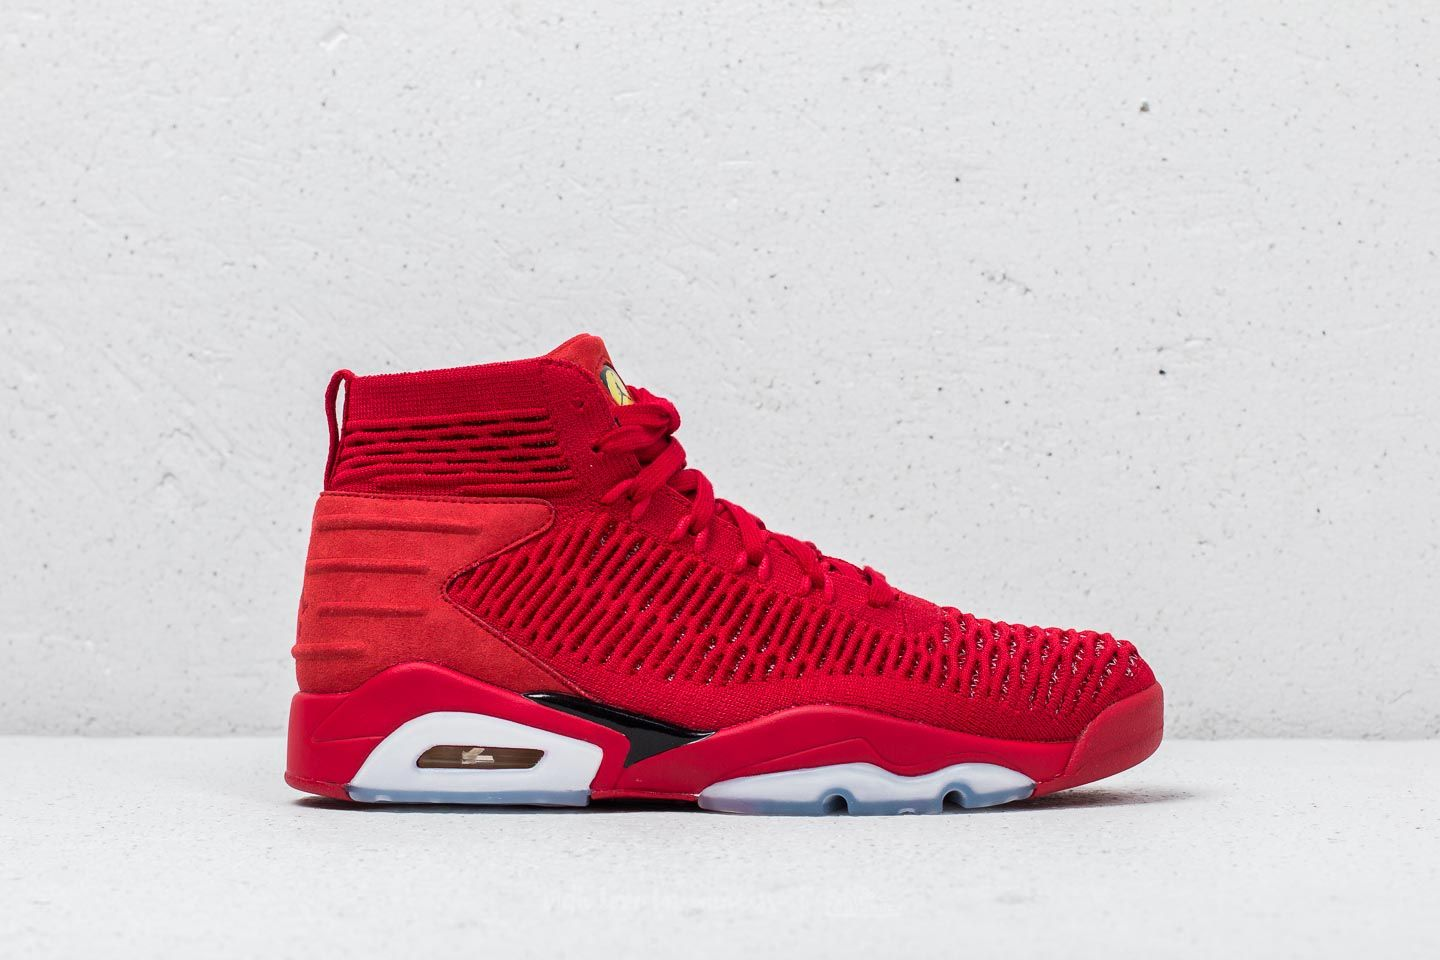 05e0f1b20d8 Jordan Flyknit Elevation 23 University Red  Black at a great price £137 buy  at